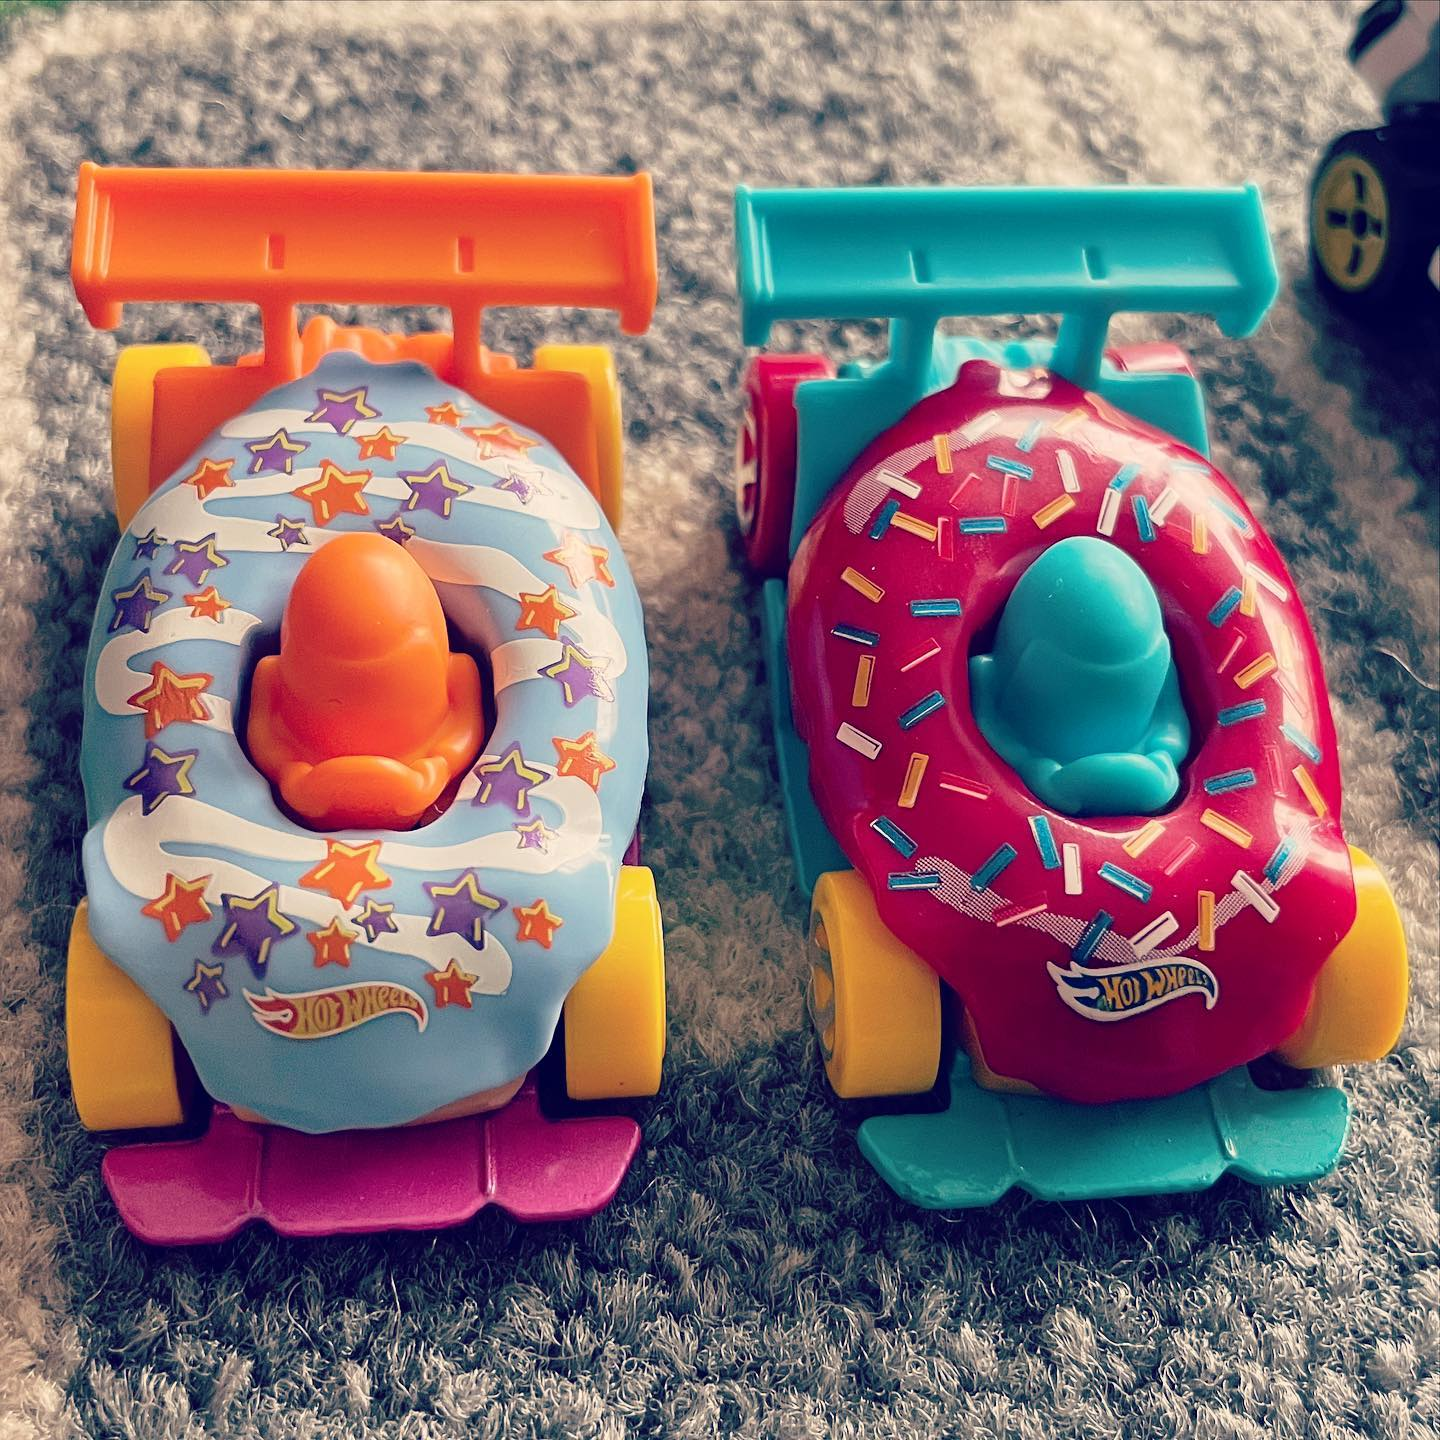 Donut Hot Wheels, because I am also a child